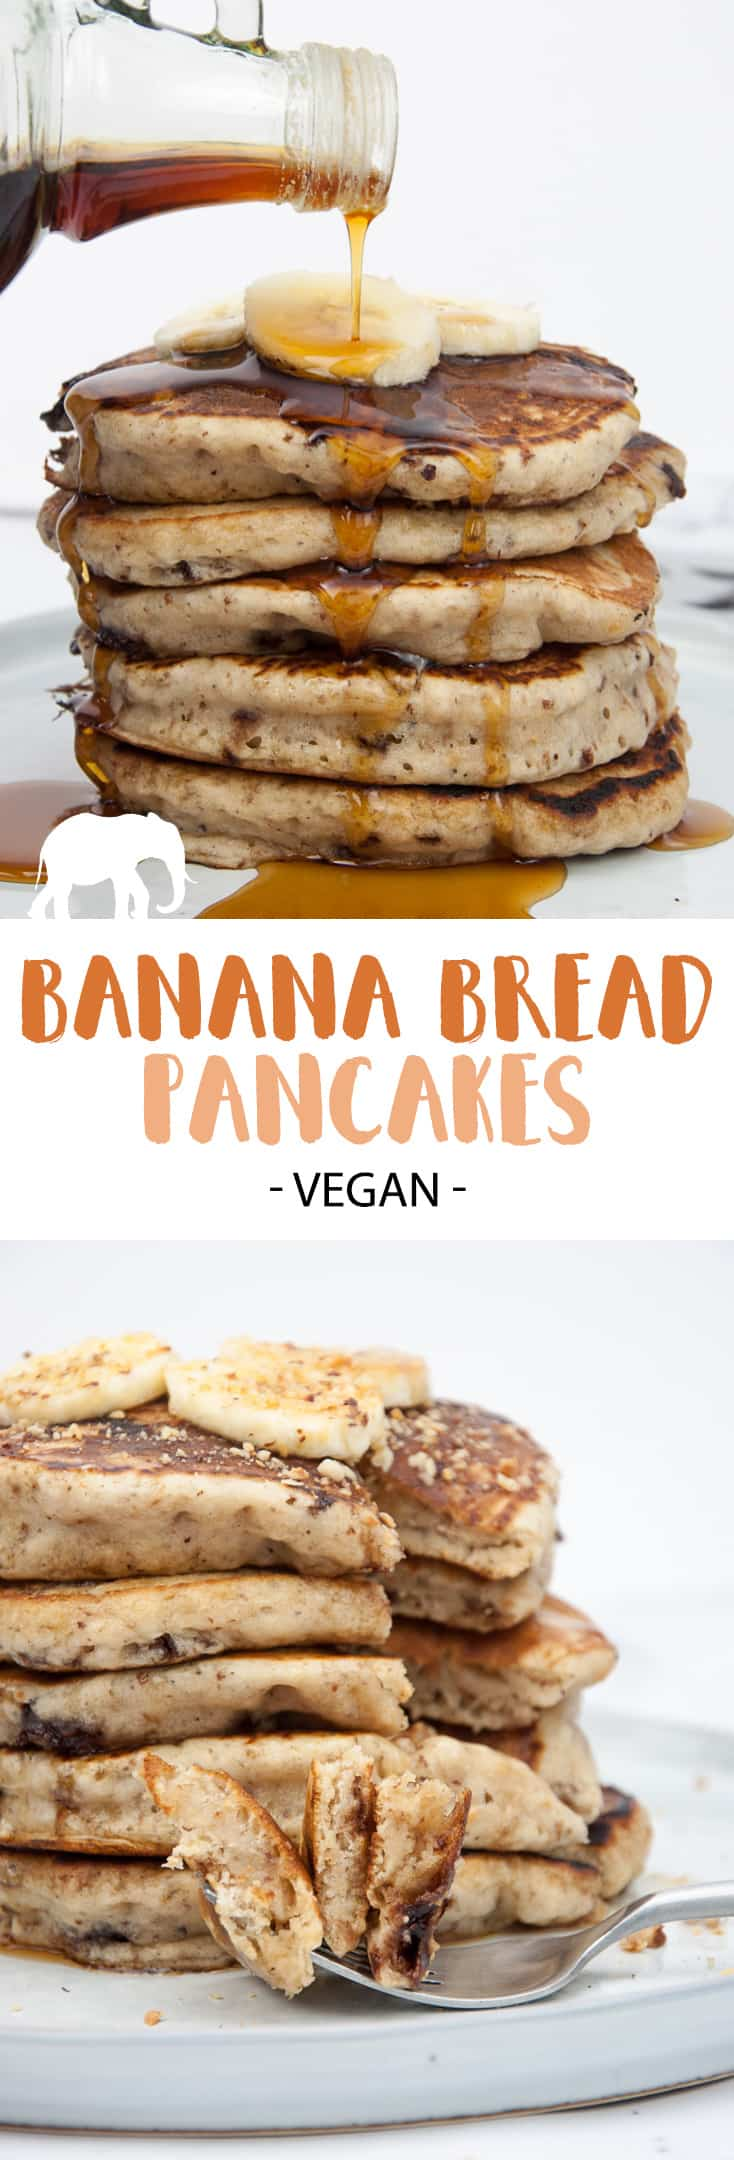 Vegan Banana Bread Pancakes #vegan #banana #pancakes #breakfast #sweet #pancakesunday